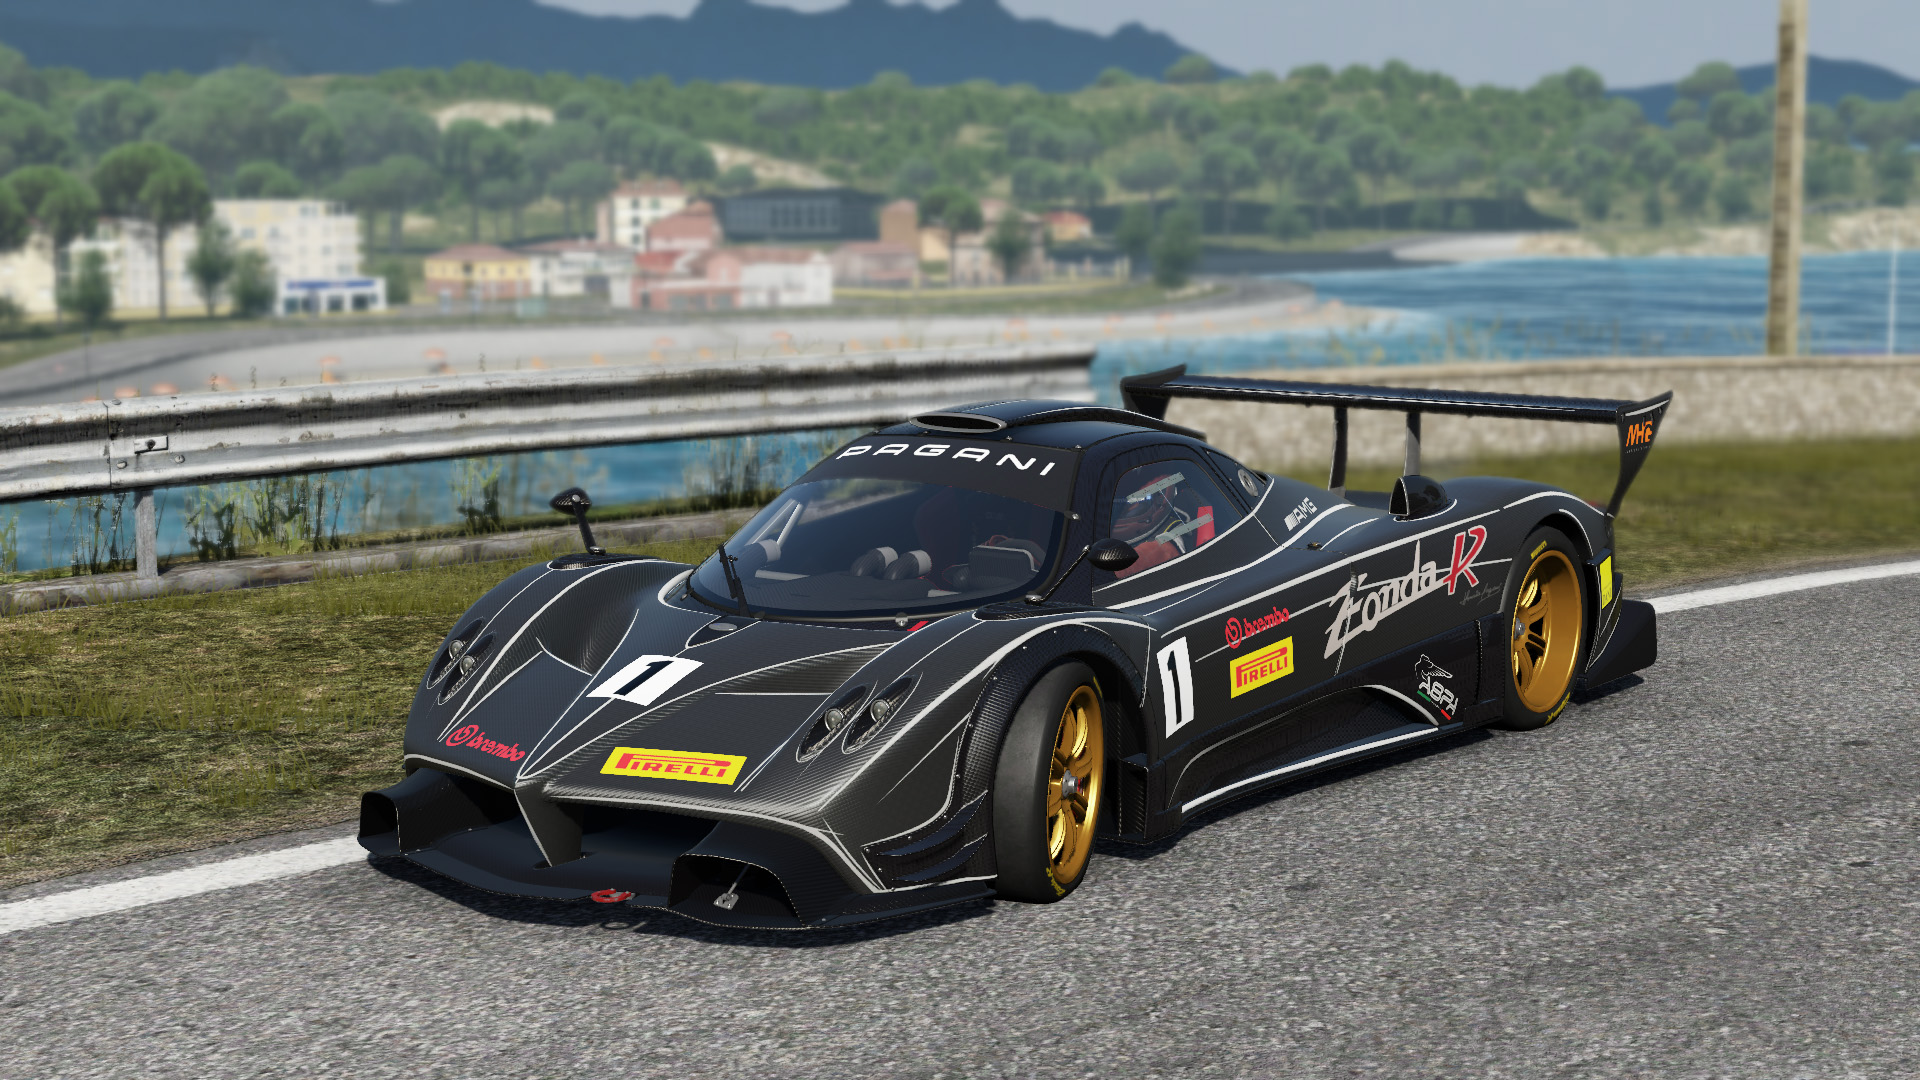 project-cars-zonda-r